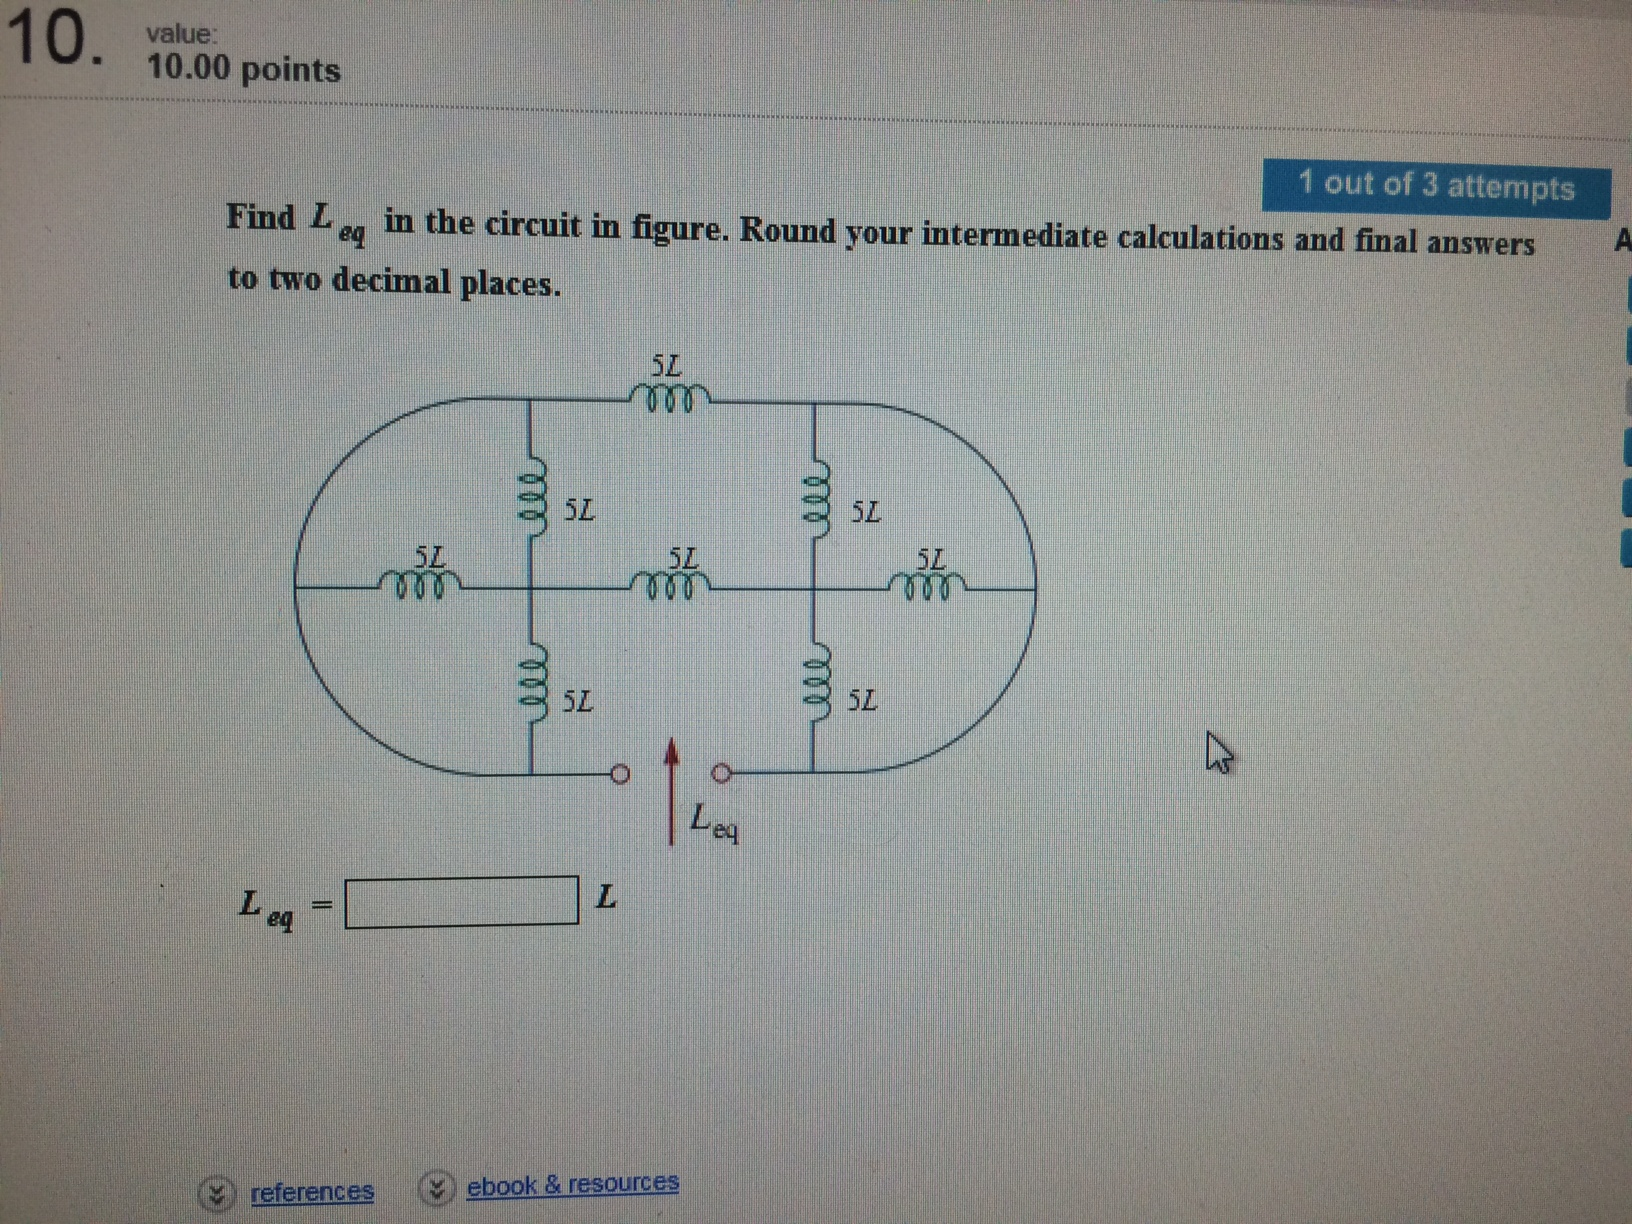 Electrical engineering archive march 23 2015 chegg image for find l eq in the circuit in figure round your intermediate calculations and fandeluxe